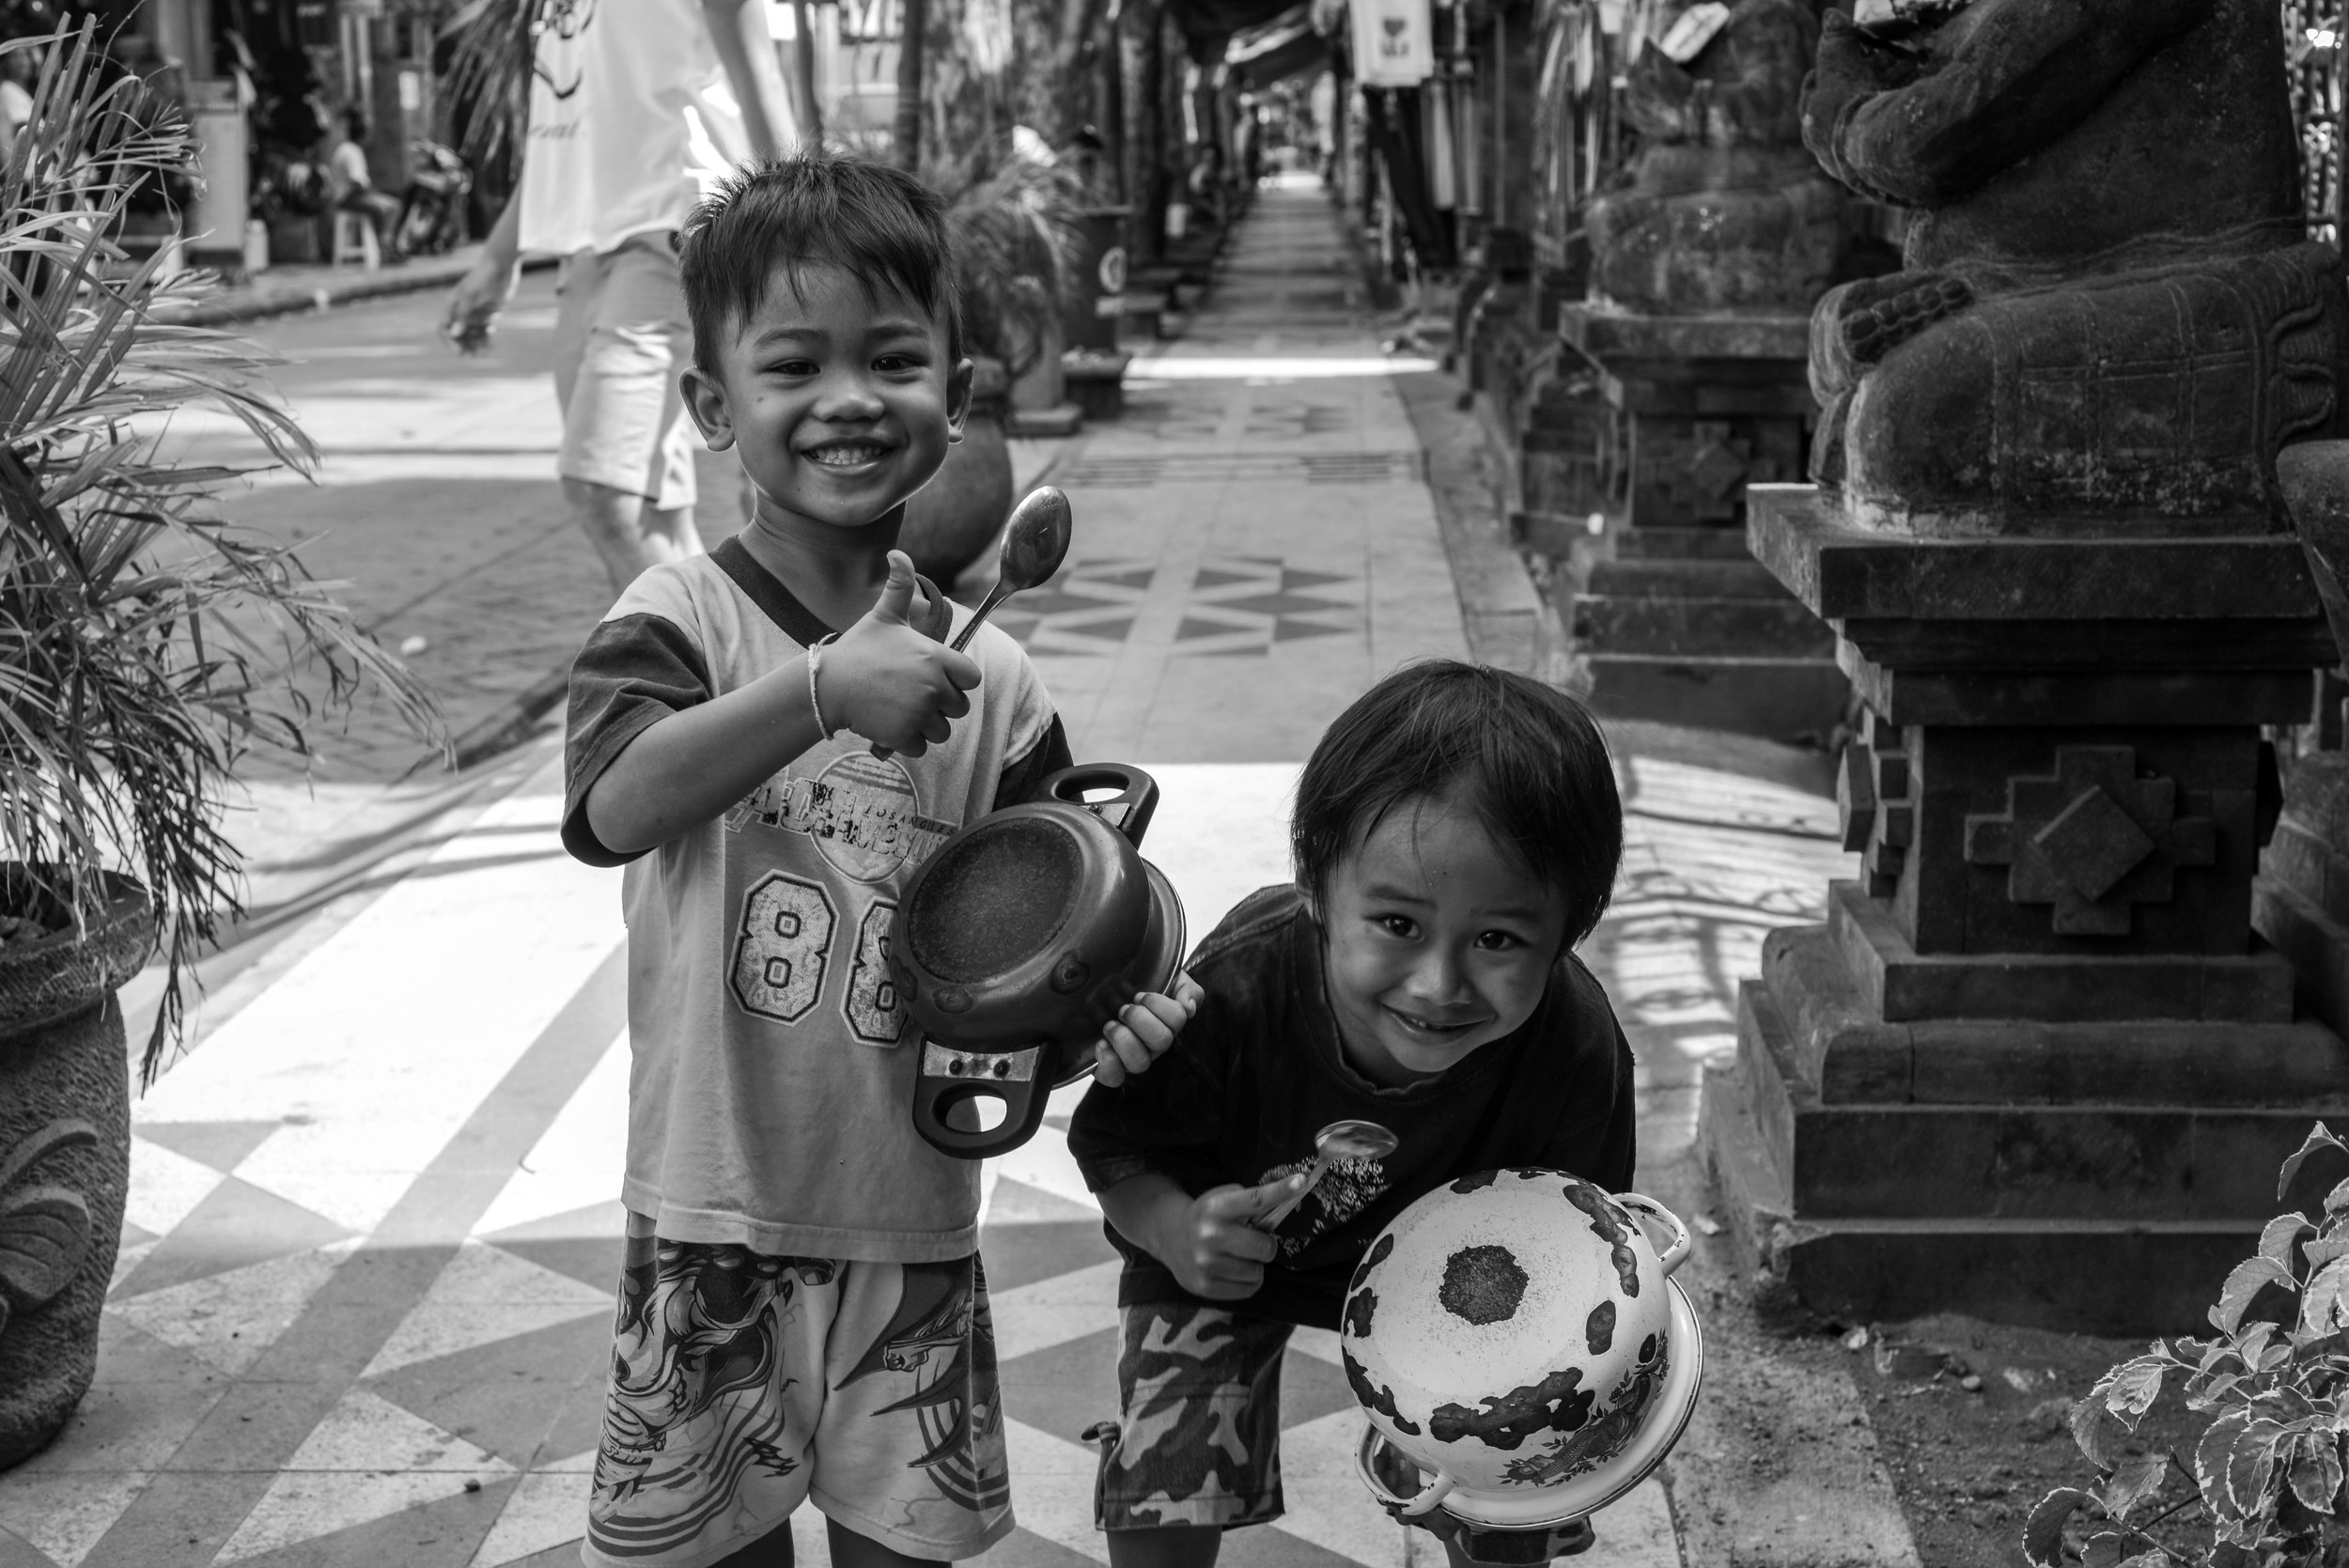 Very happy local kids playing pots and pans in Kuta.